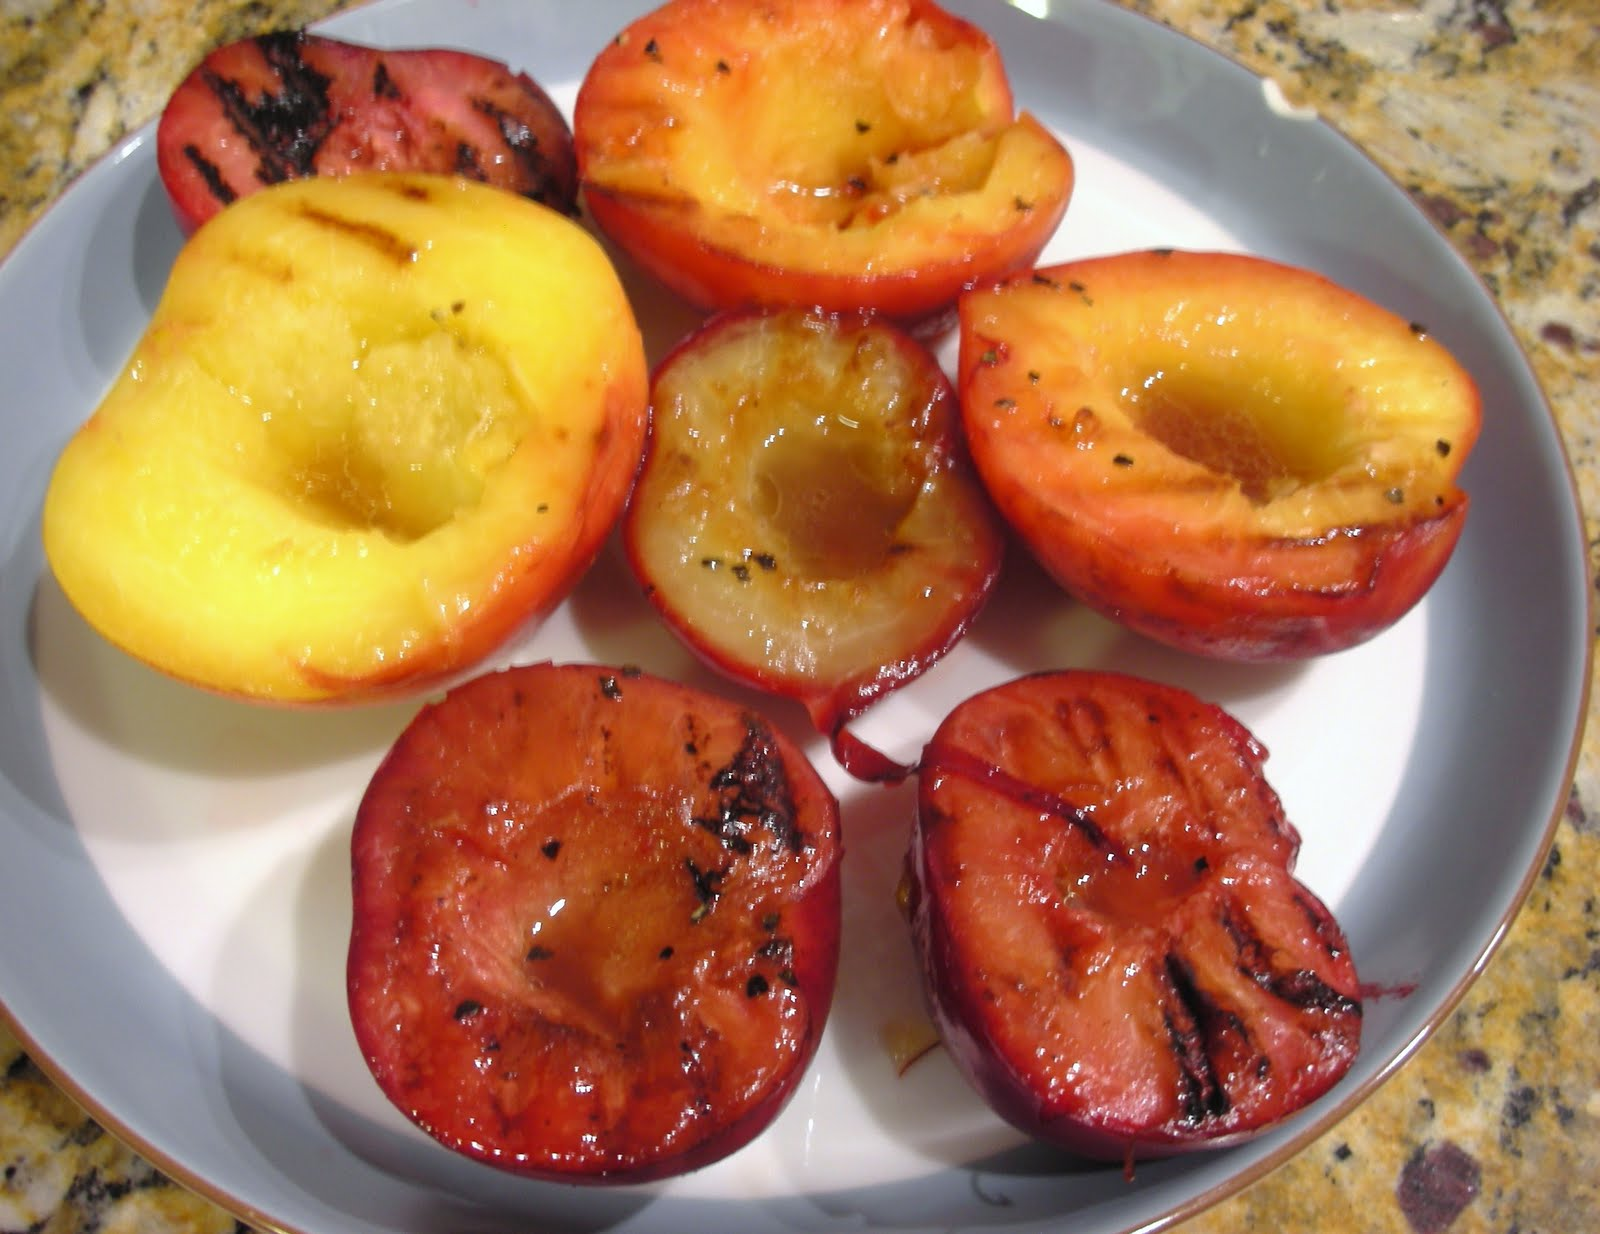 Everyday Vegan: Grilled Stone Fruit Antipasto Plate